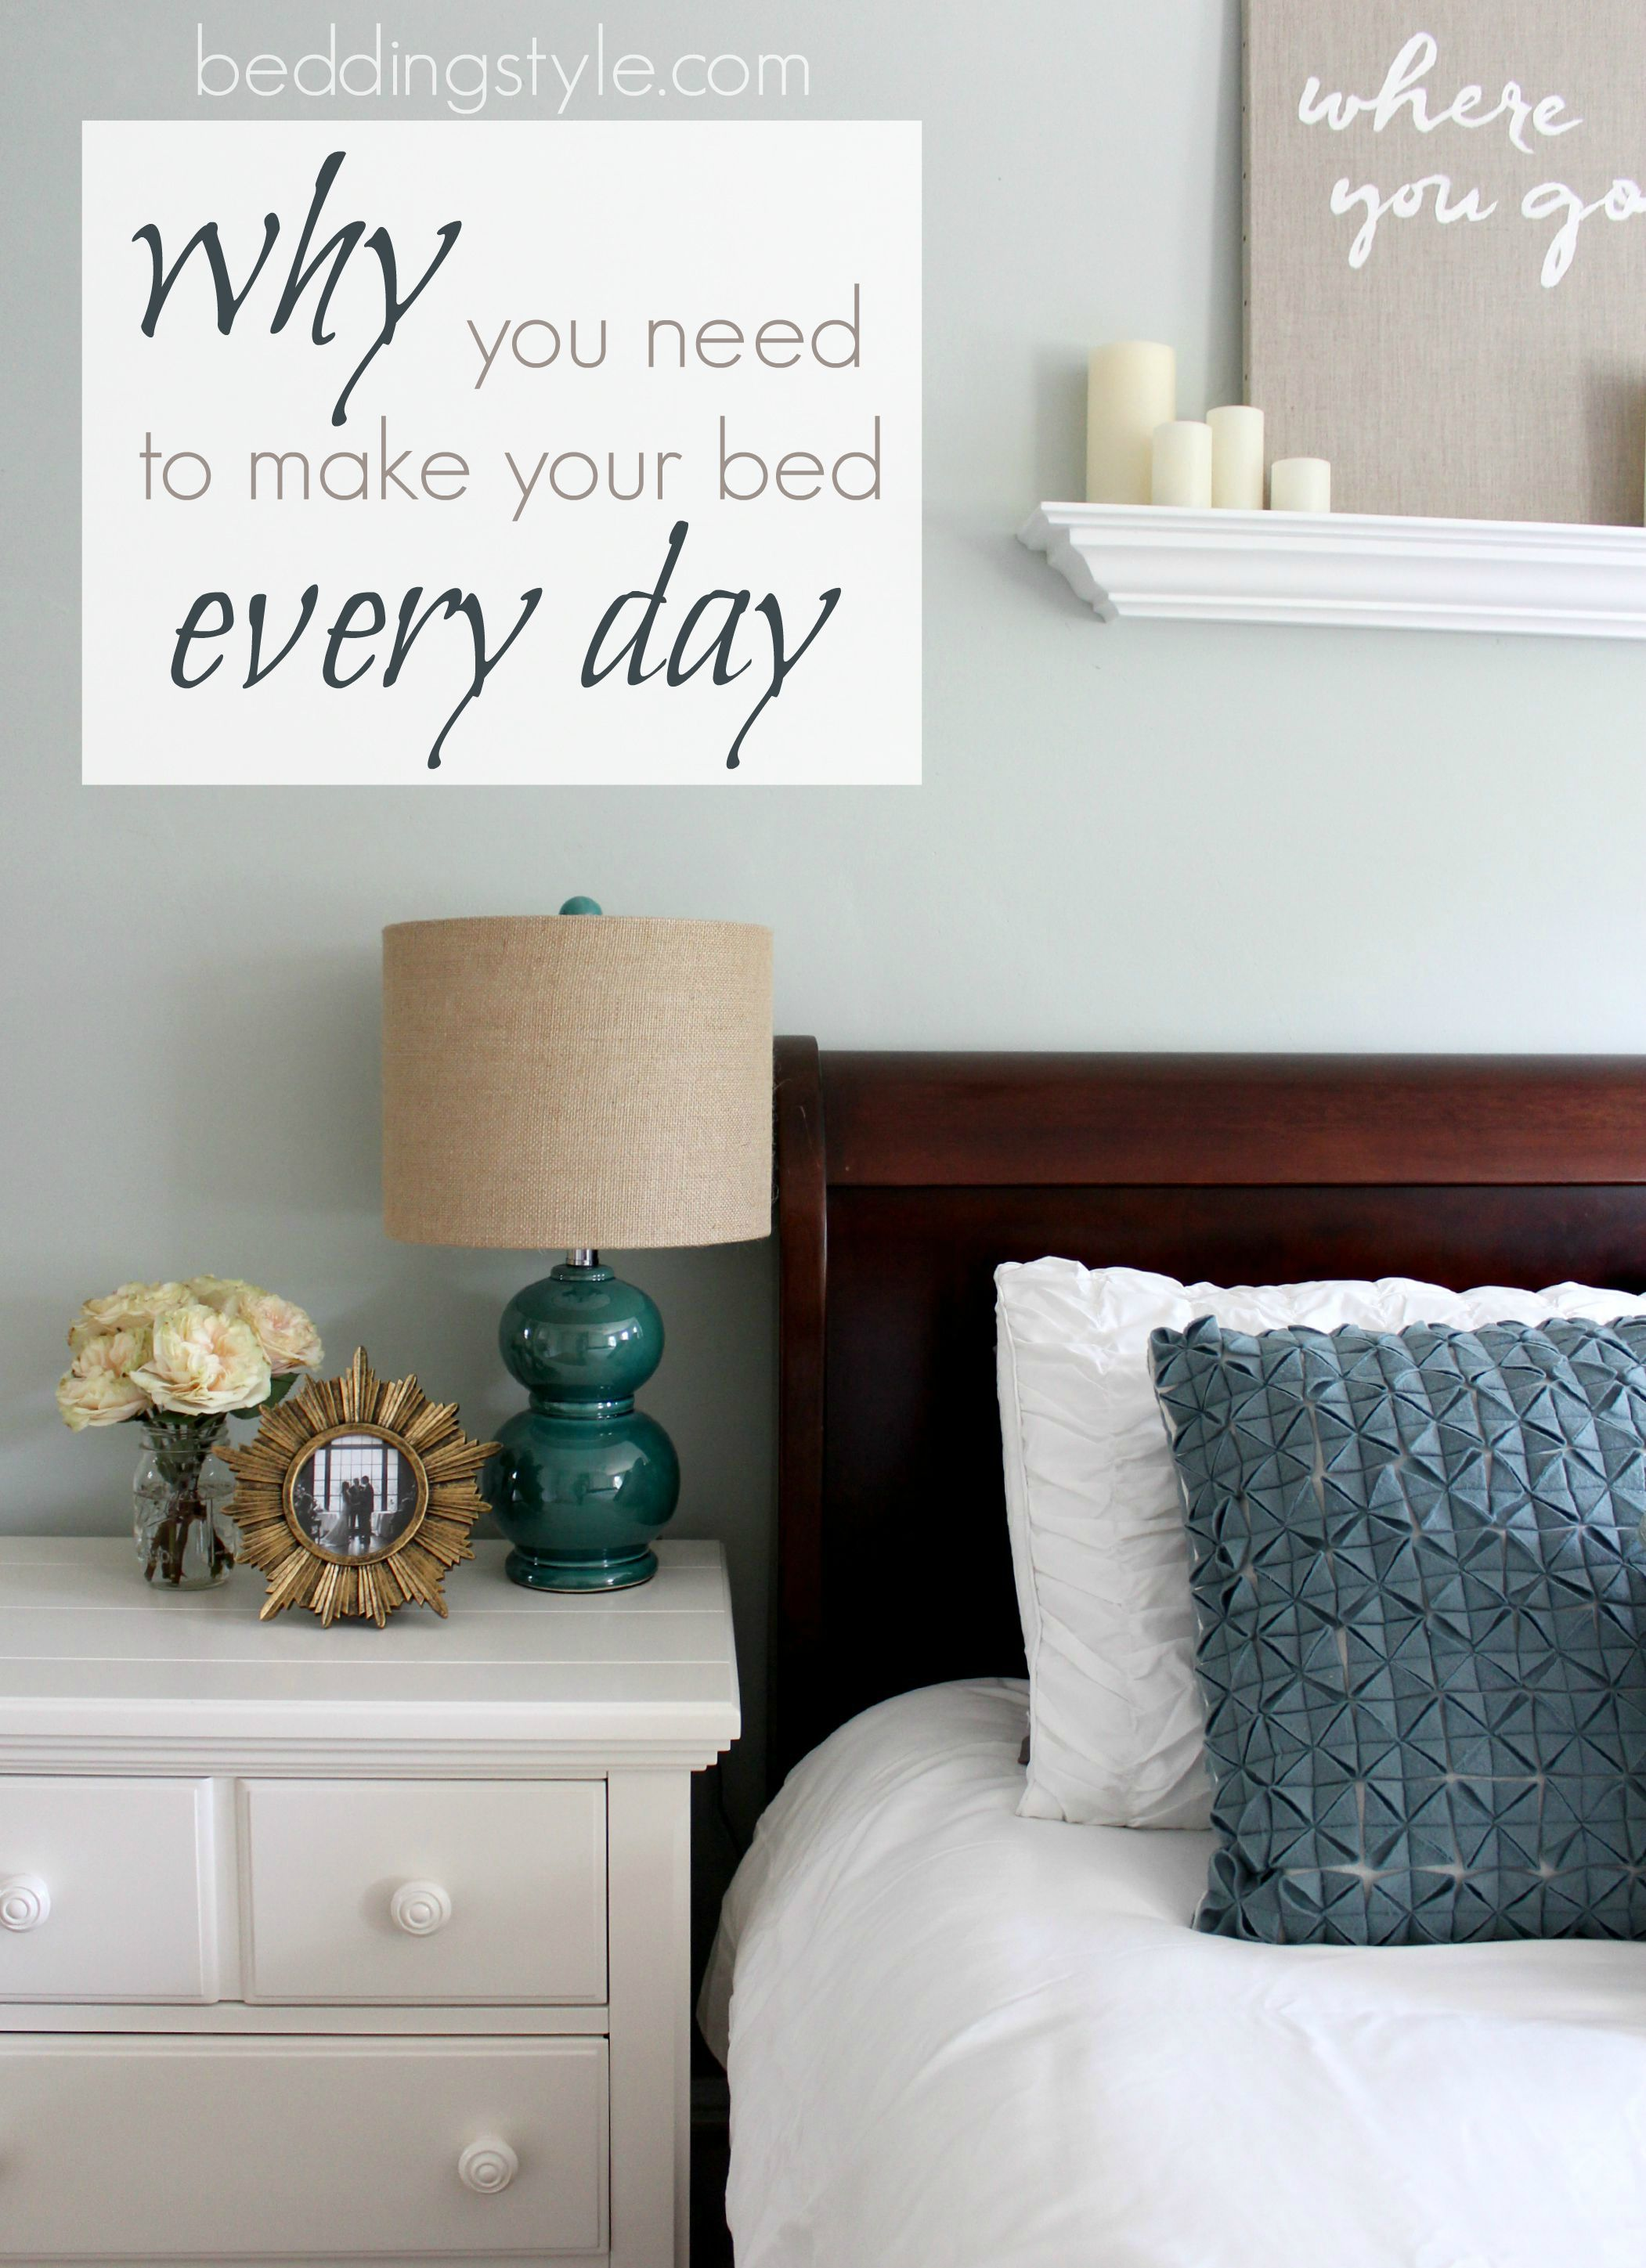 Why You Need To Make Your Bed Daily From Beddingstyle Com